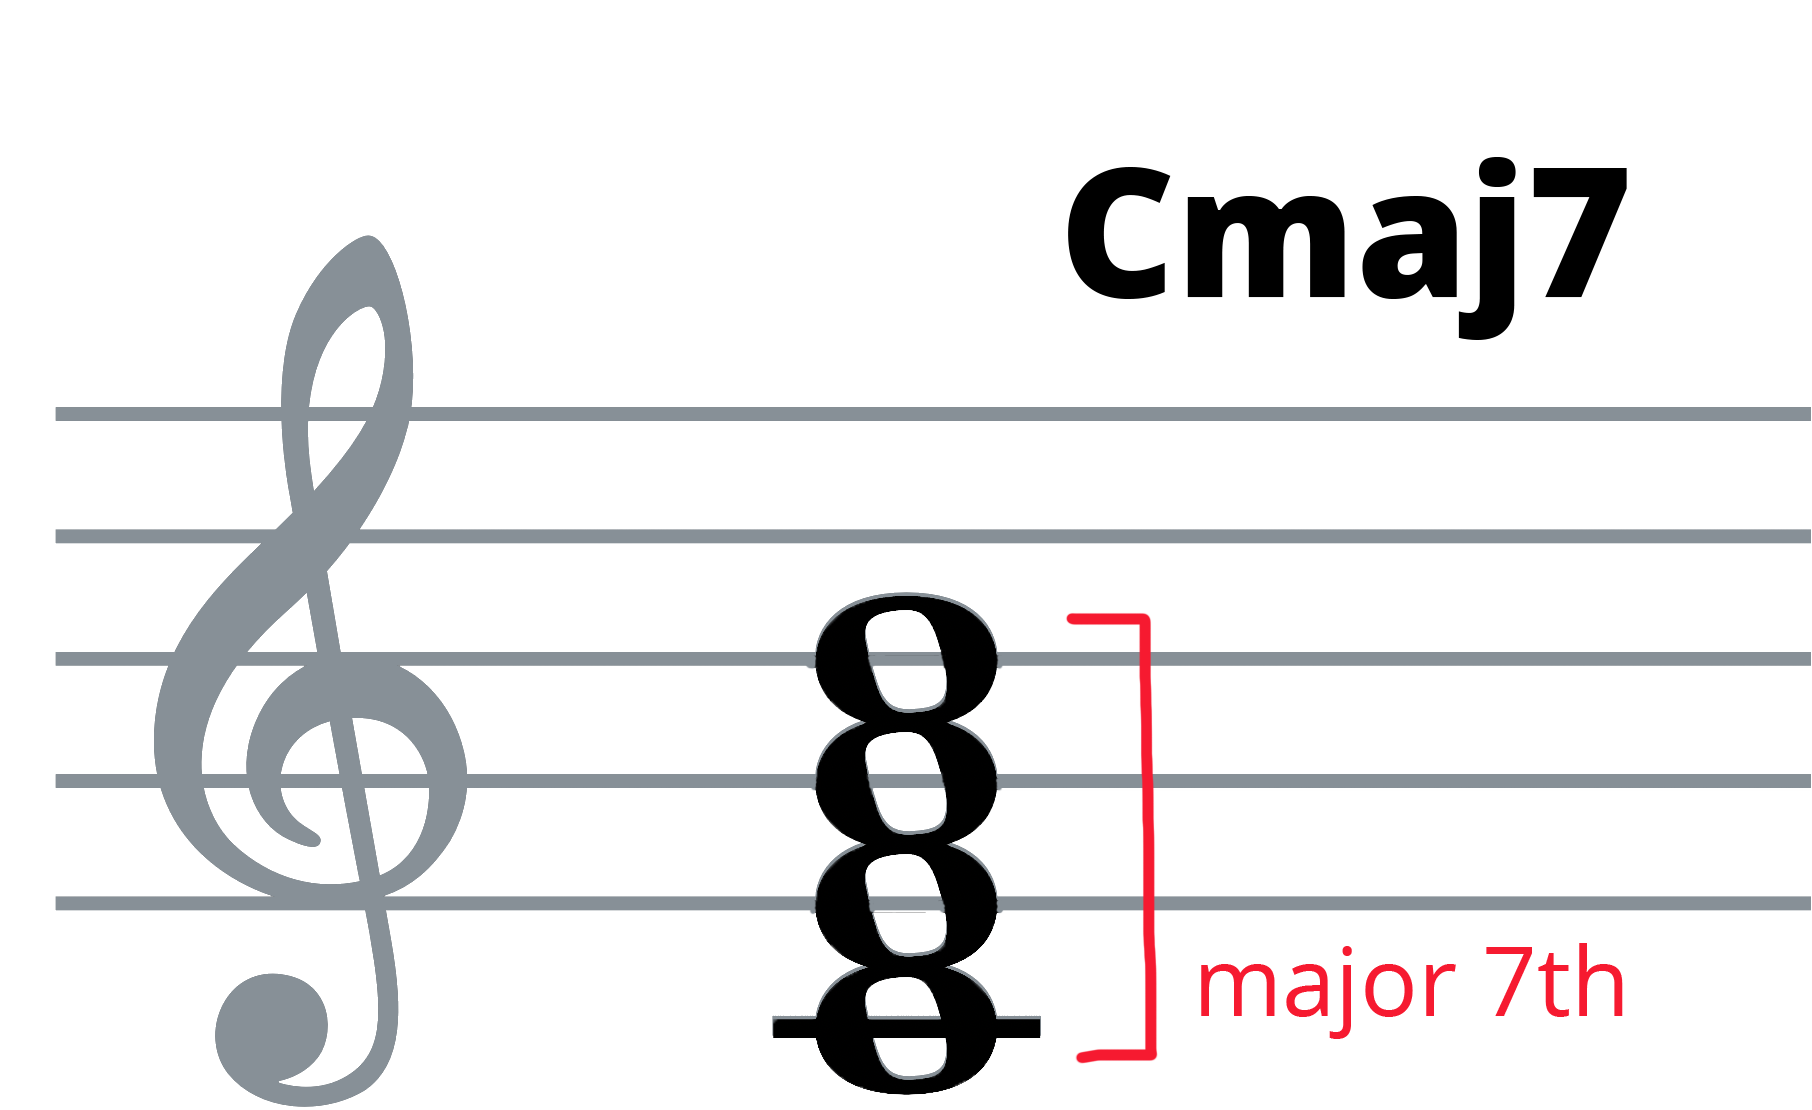 Cmaj7 piano chord on treble clef with major 7th interval between C and B.